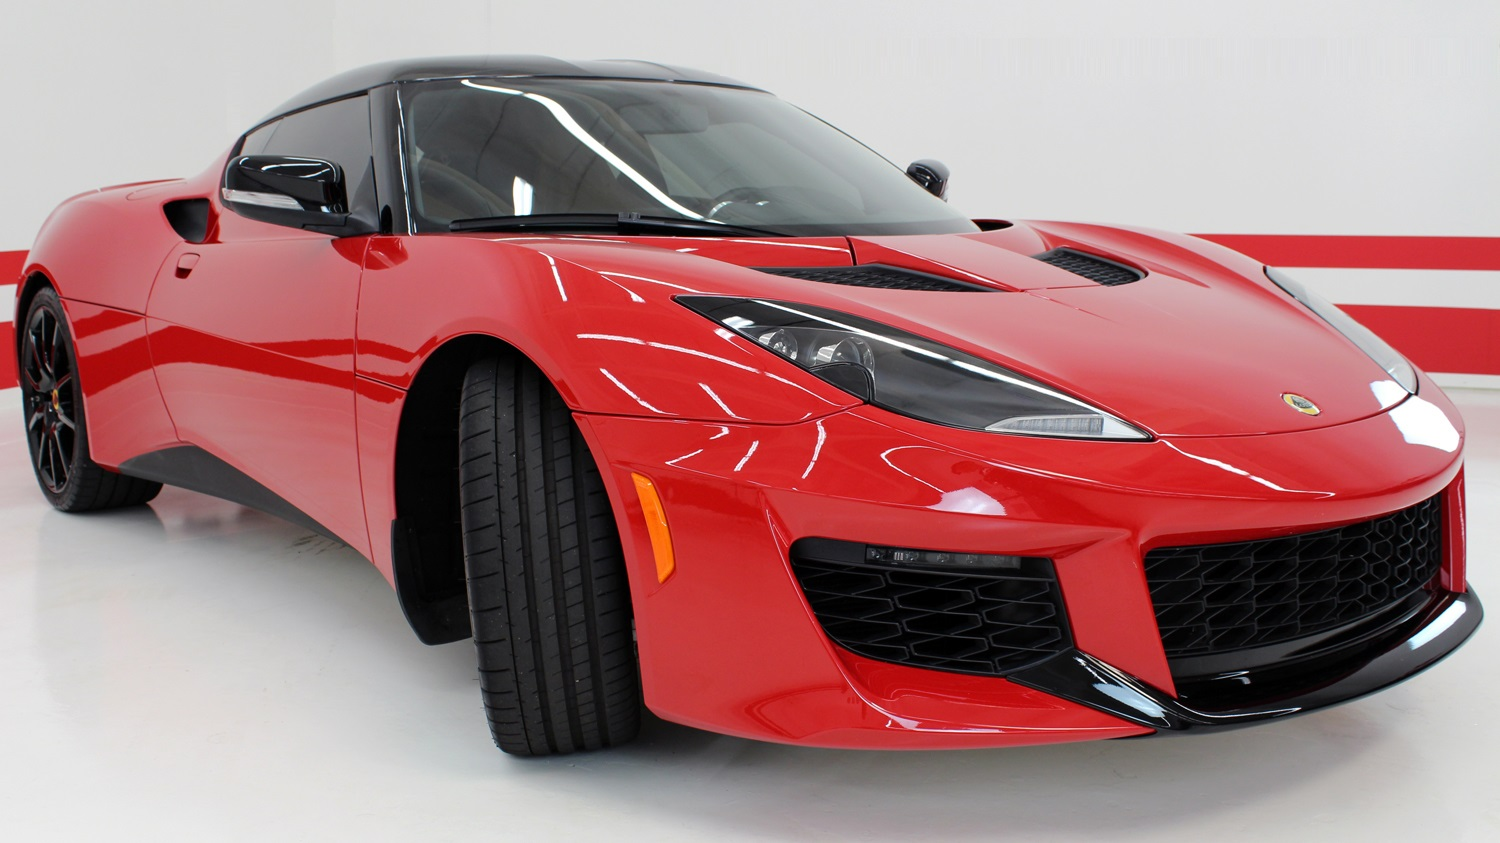 2017 Lotus Evora 400 ($110K MSRP)